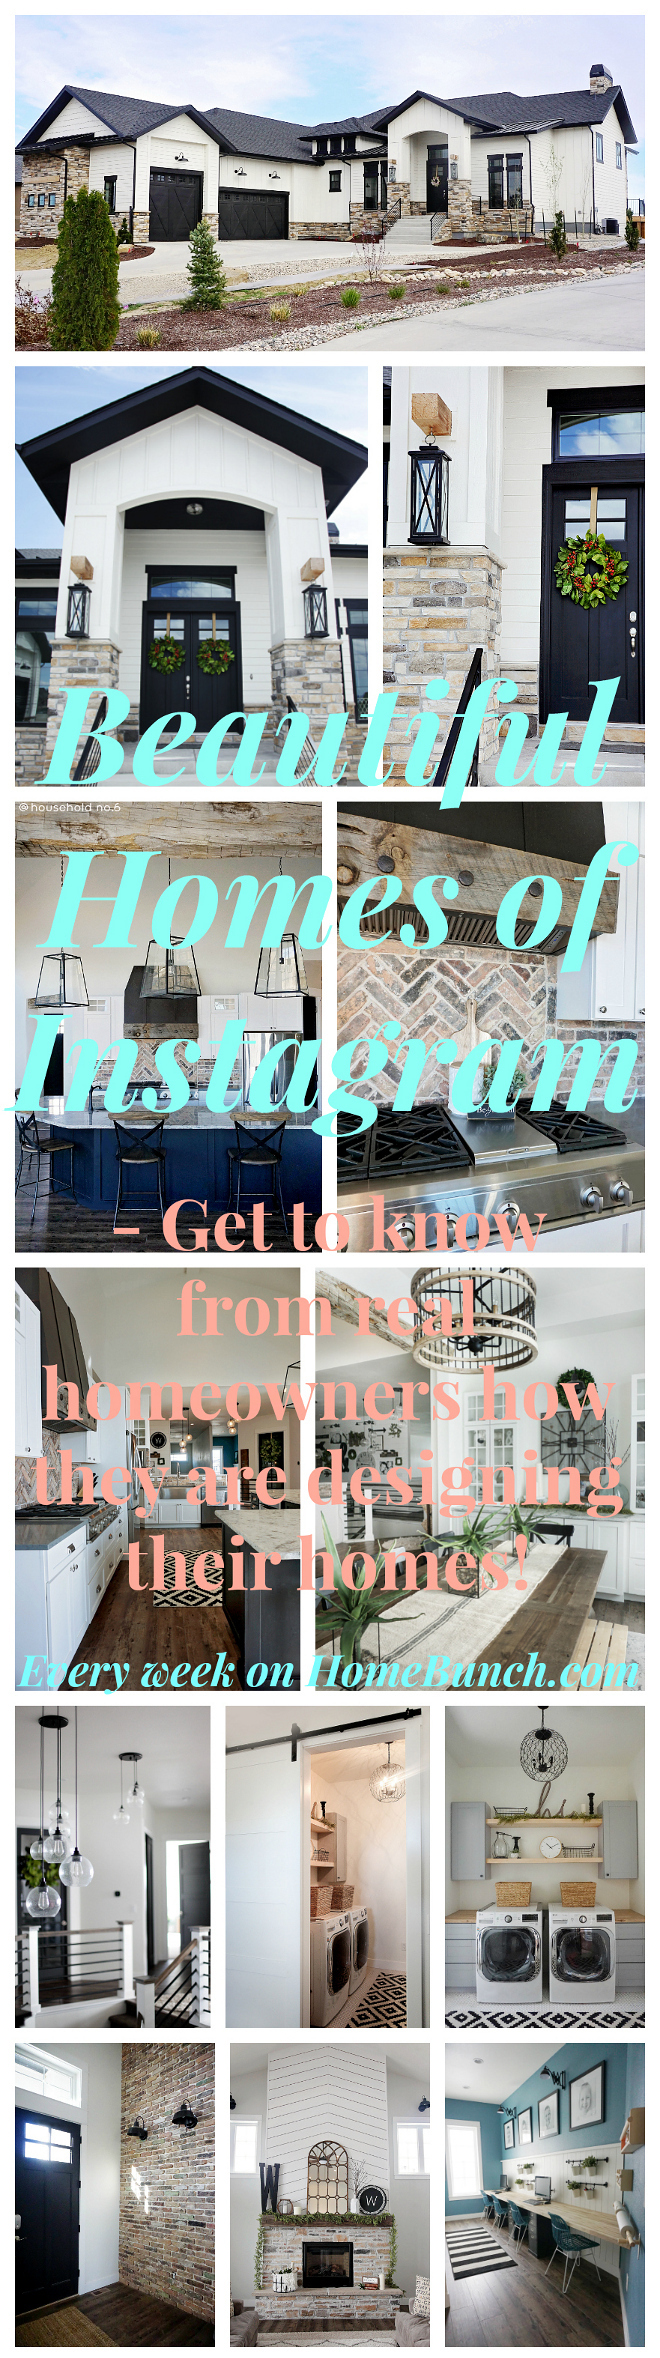 Beautiful Homes of Instagram Get to know from real homeowners how they are designing their homes #BeautifulHomes #Instagram